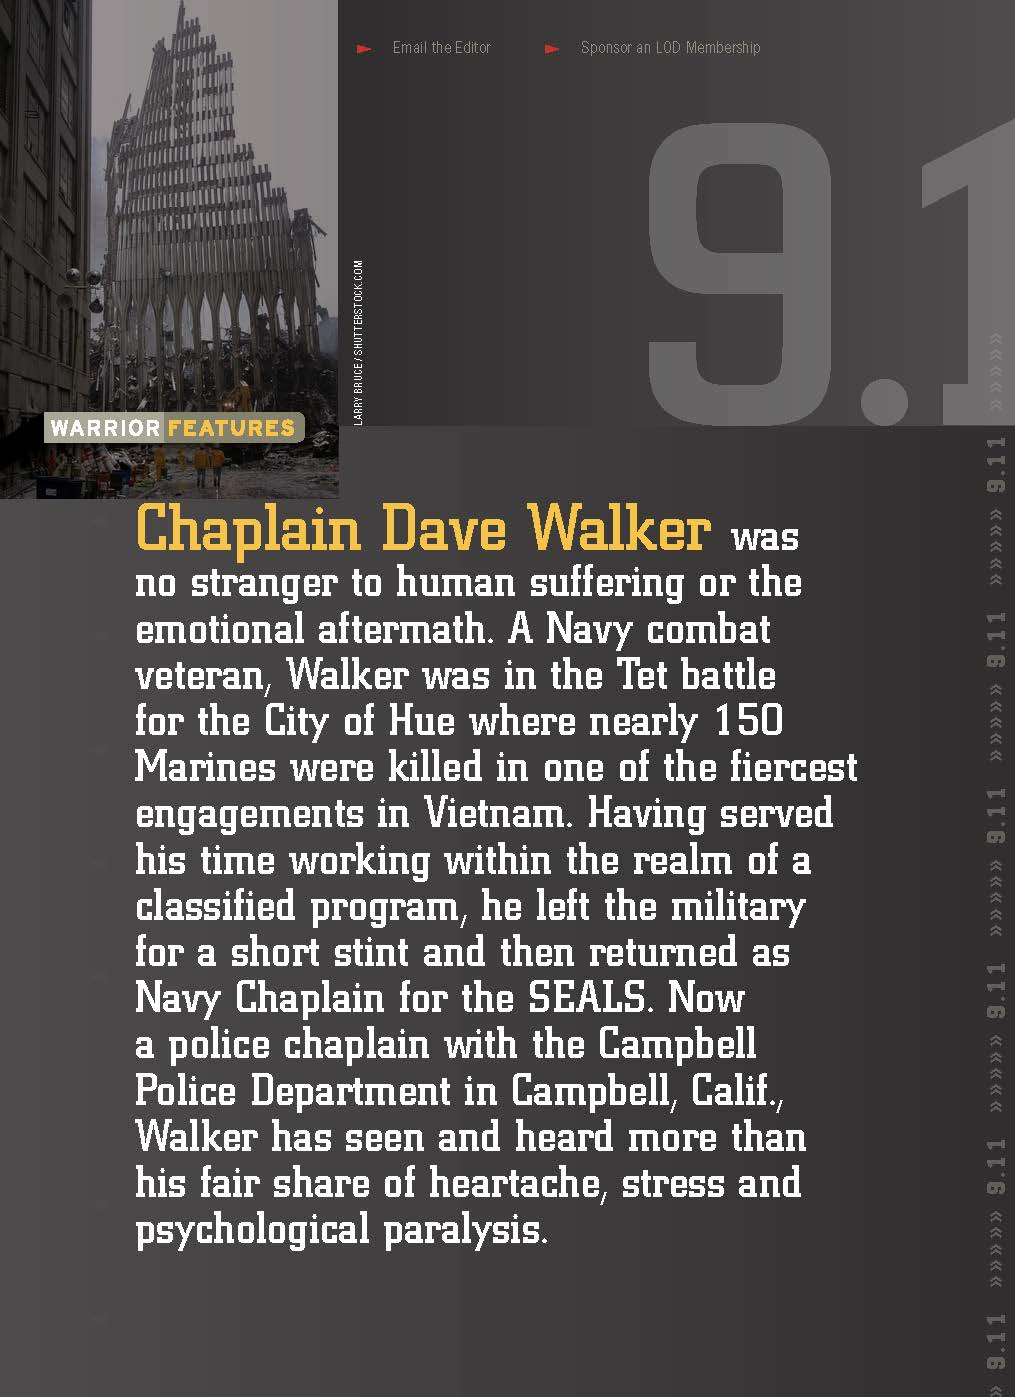 DW_article_NRA_p1_Page_1.jpg